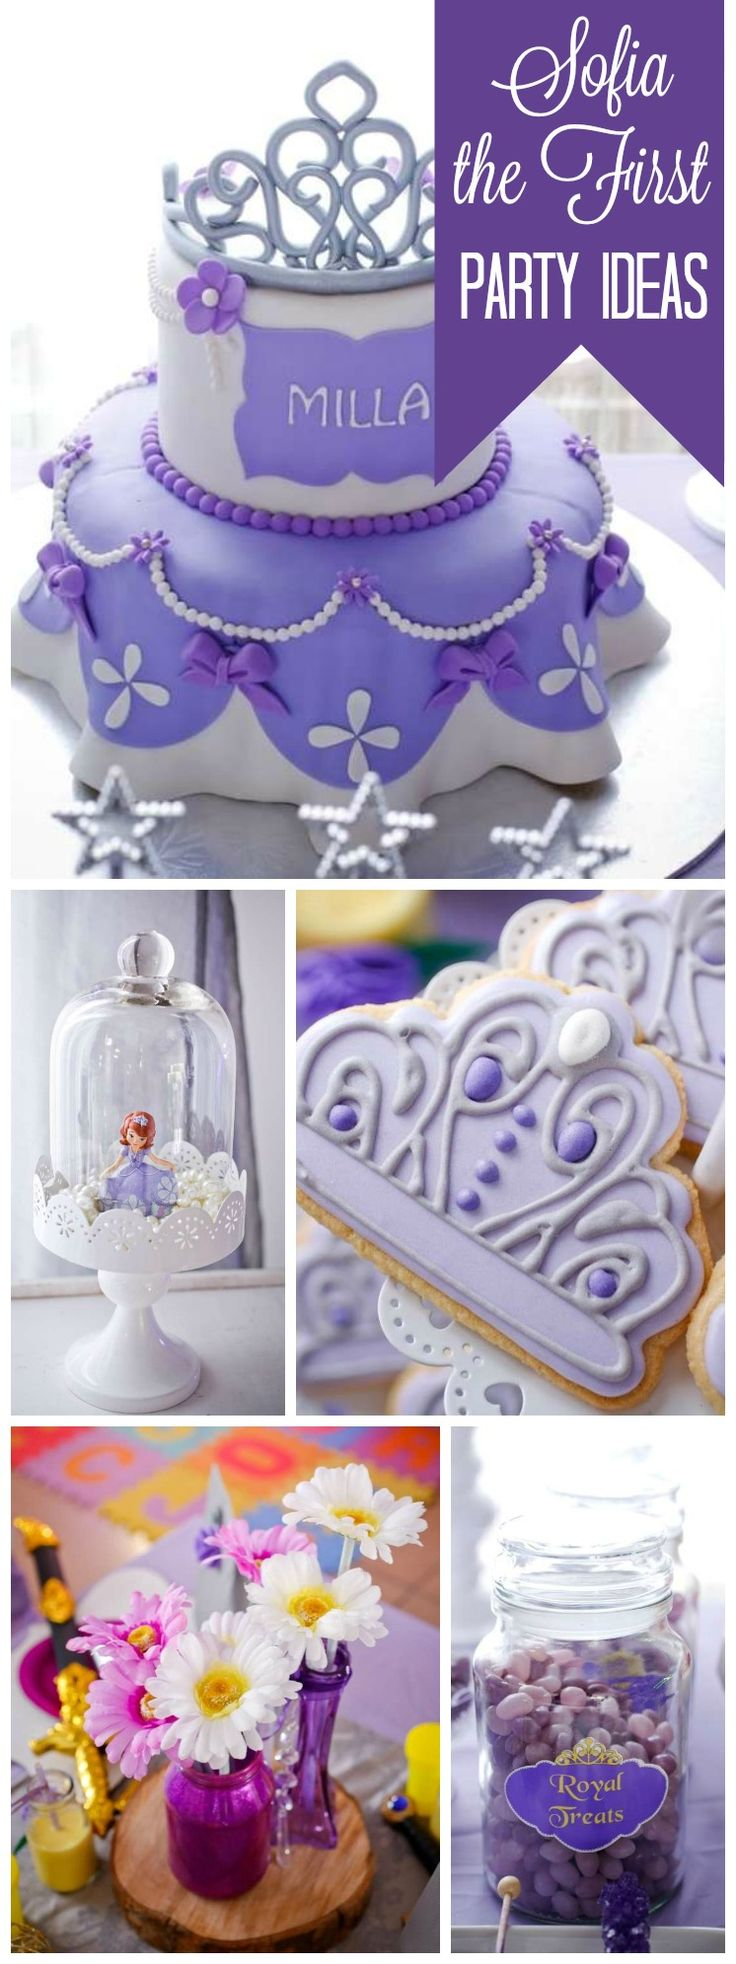 The 71 Best Images About Sofia The First Party On Pinterest